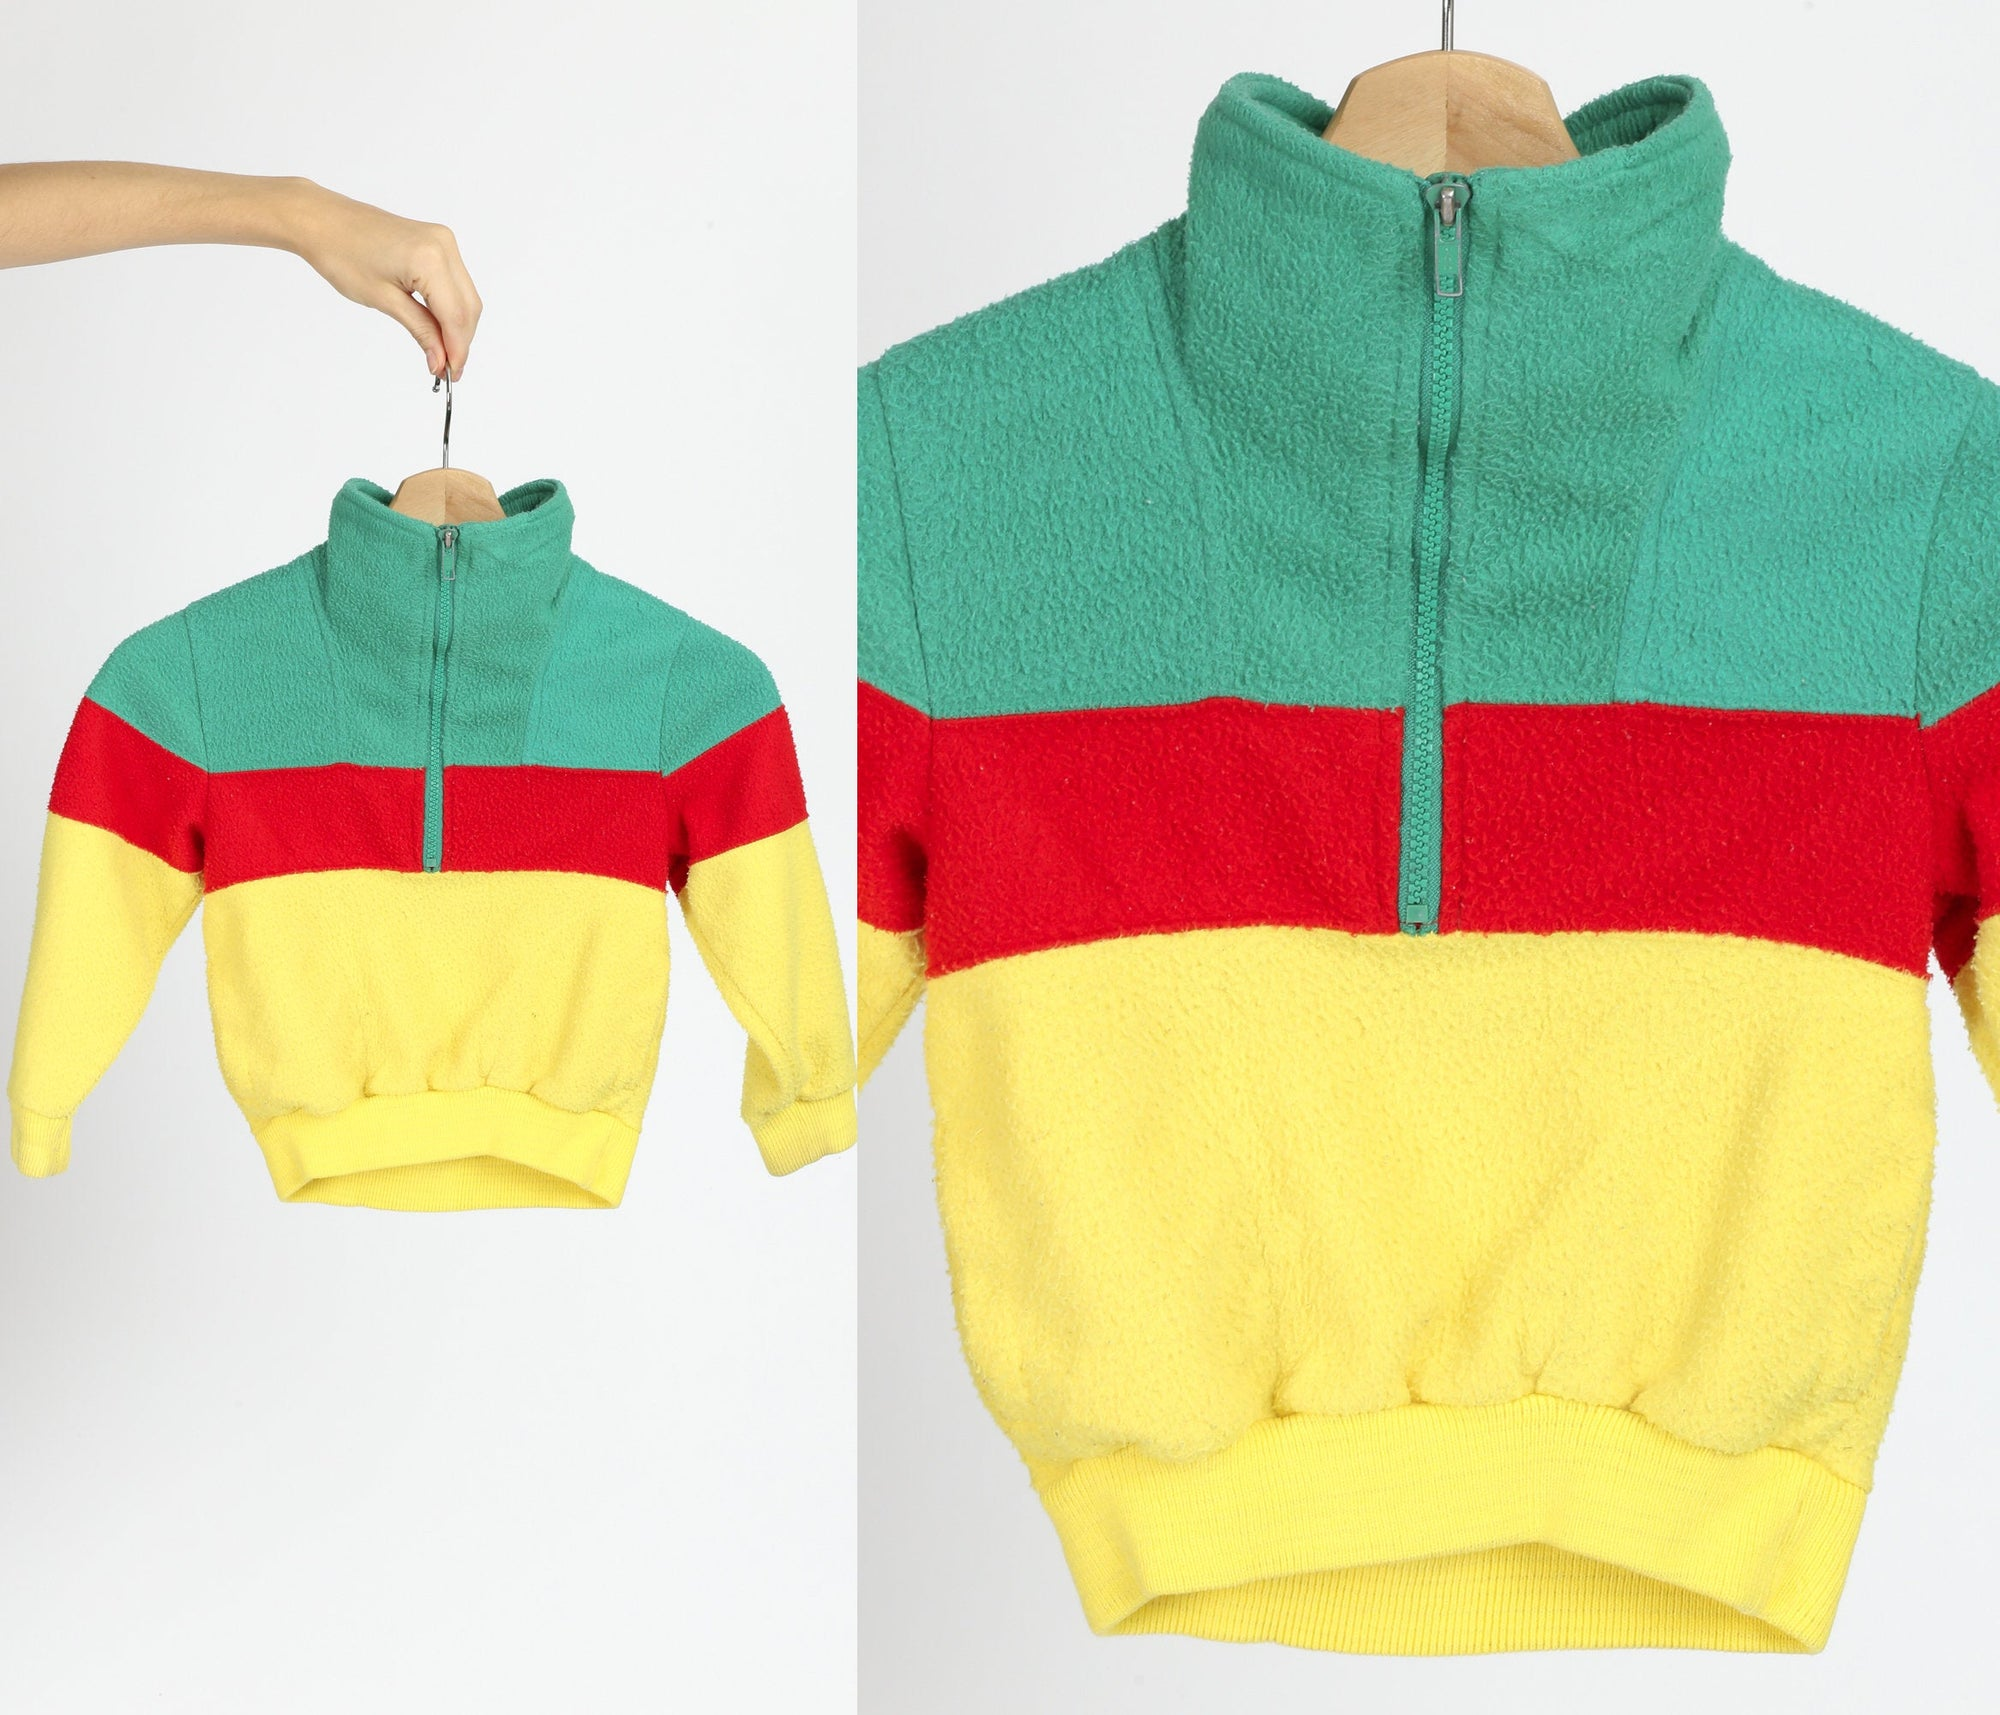 90s Kids Rasta Striped Fleece Jacket - Size 5